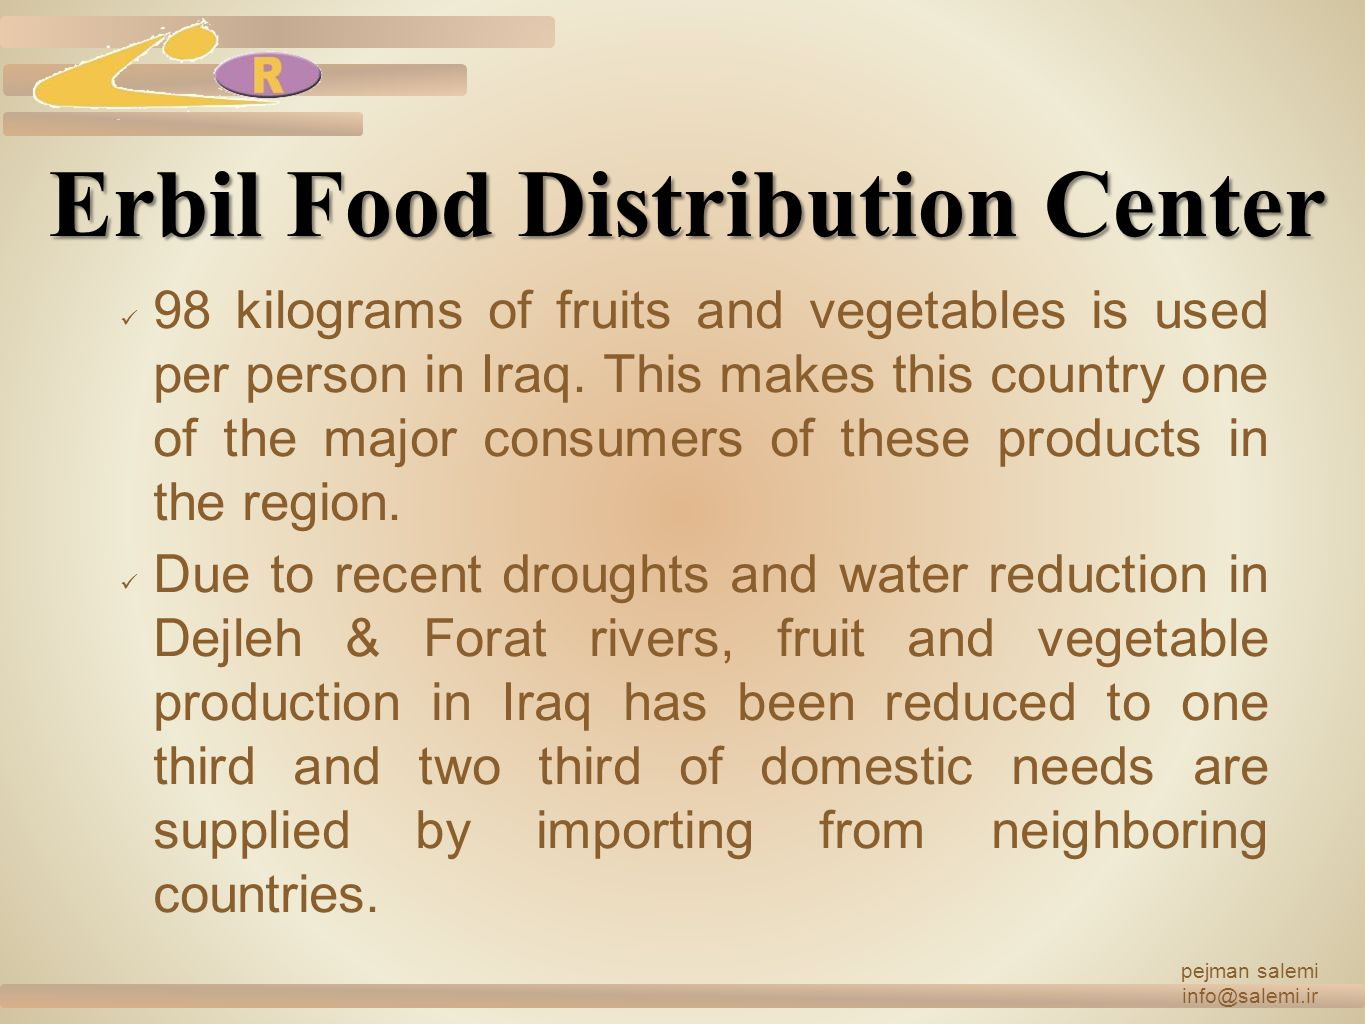 Erbil Food Distribution Center 98 kilograms of fruits and vegetables is used per person in Iraq. This makes this country one of the major consumers of